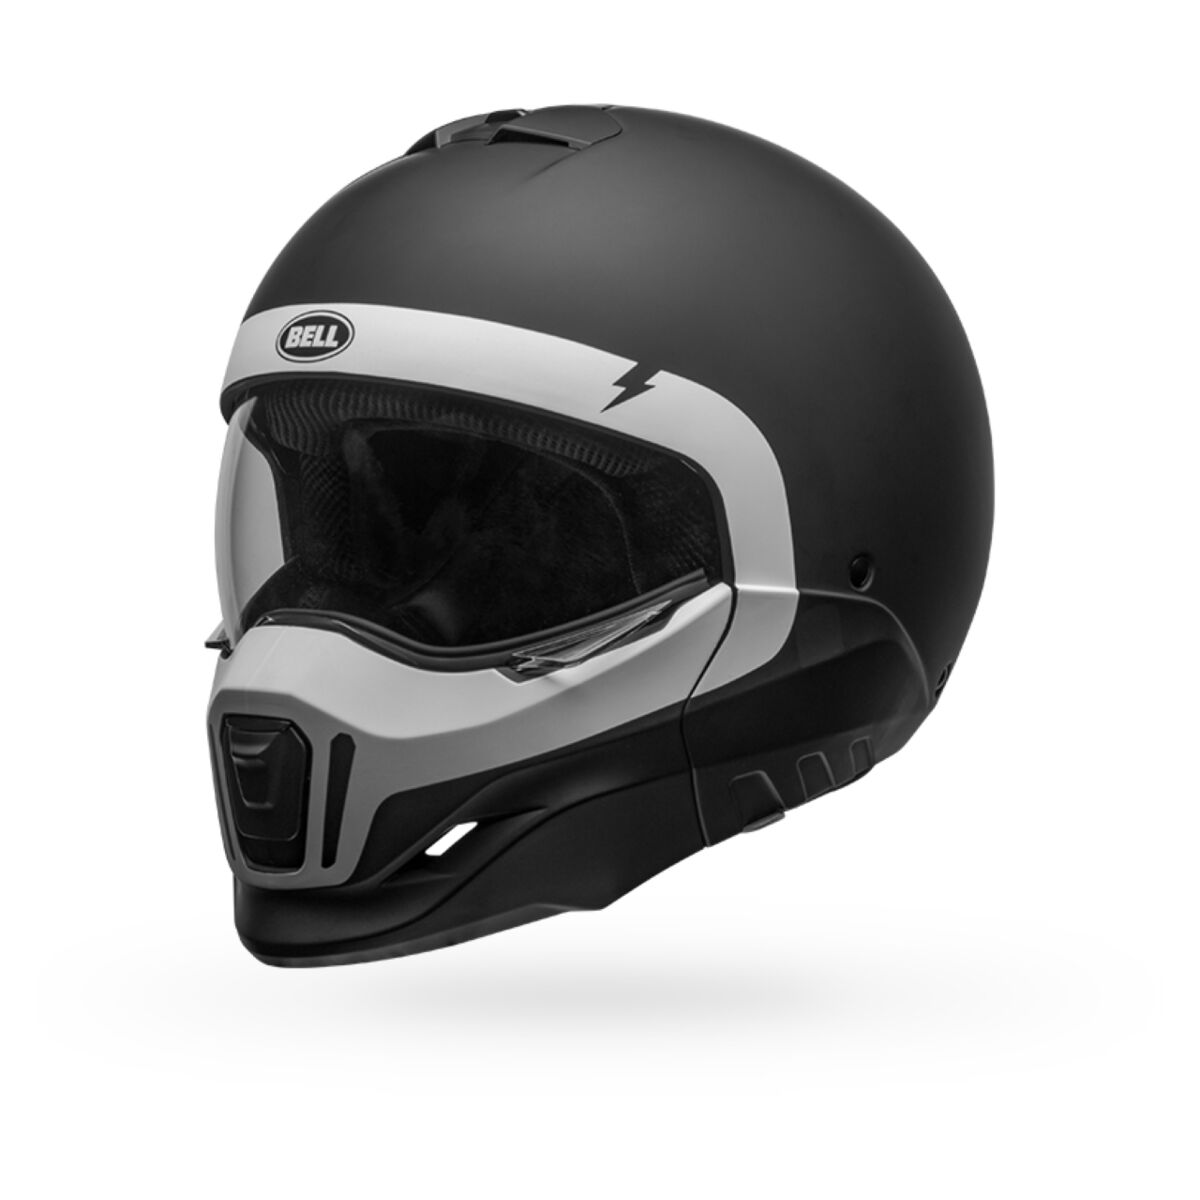 BELL BROOZER FREE RIDE HELMET MATTE GRAY//BLACK XL